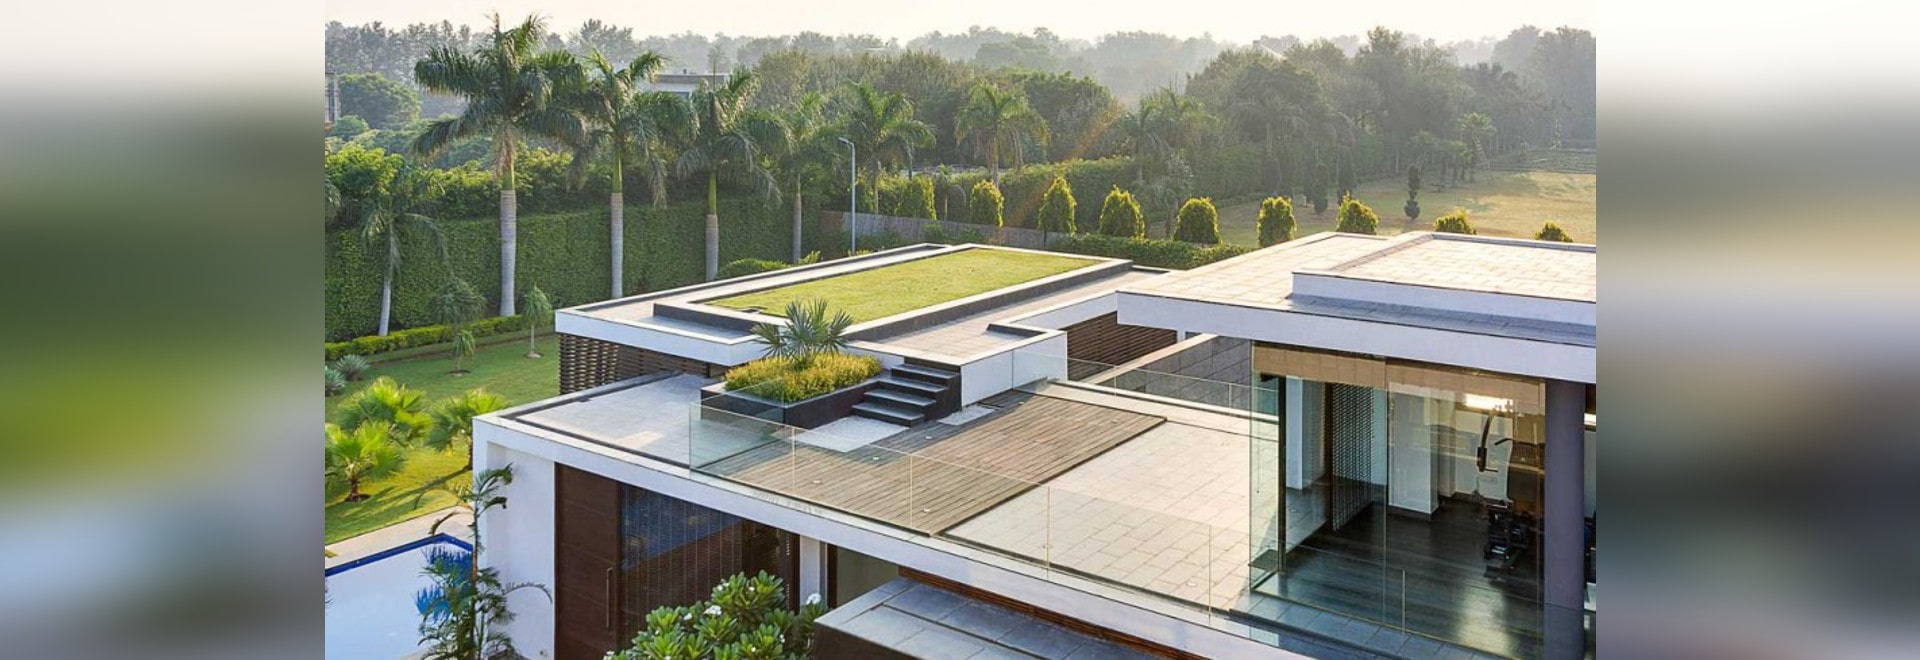 Contemporary New Delhi Villa with Amazing Courtyard and Water ...